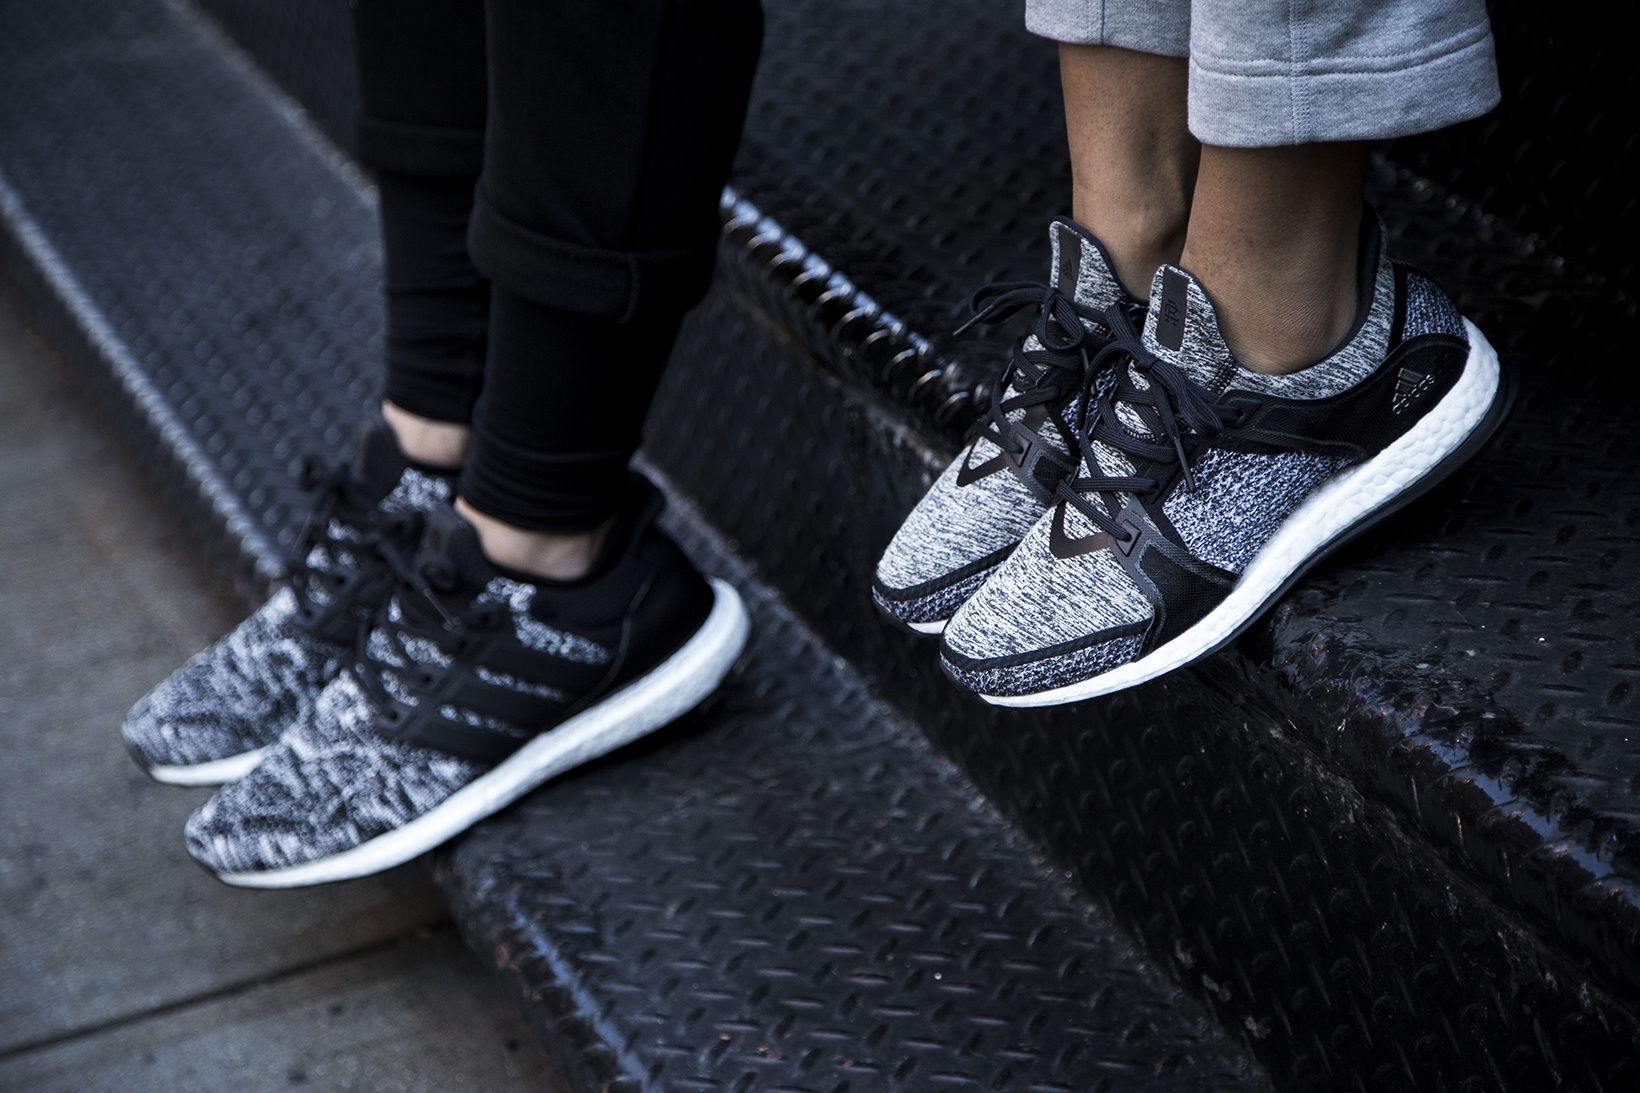 cc07411312934 All Eyes On The Adidas x Reigning Champ PureBOOST X Trainer — CNK  DailyChicksNKicks